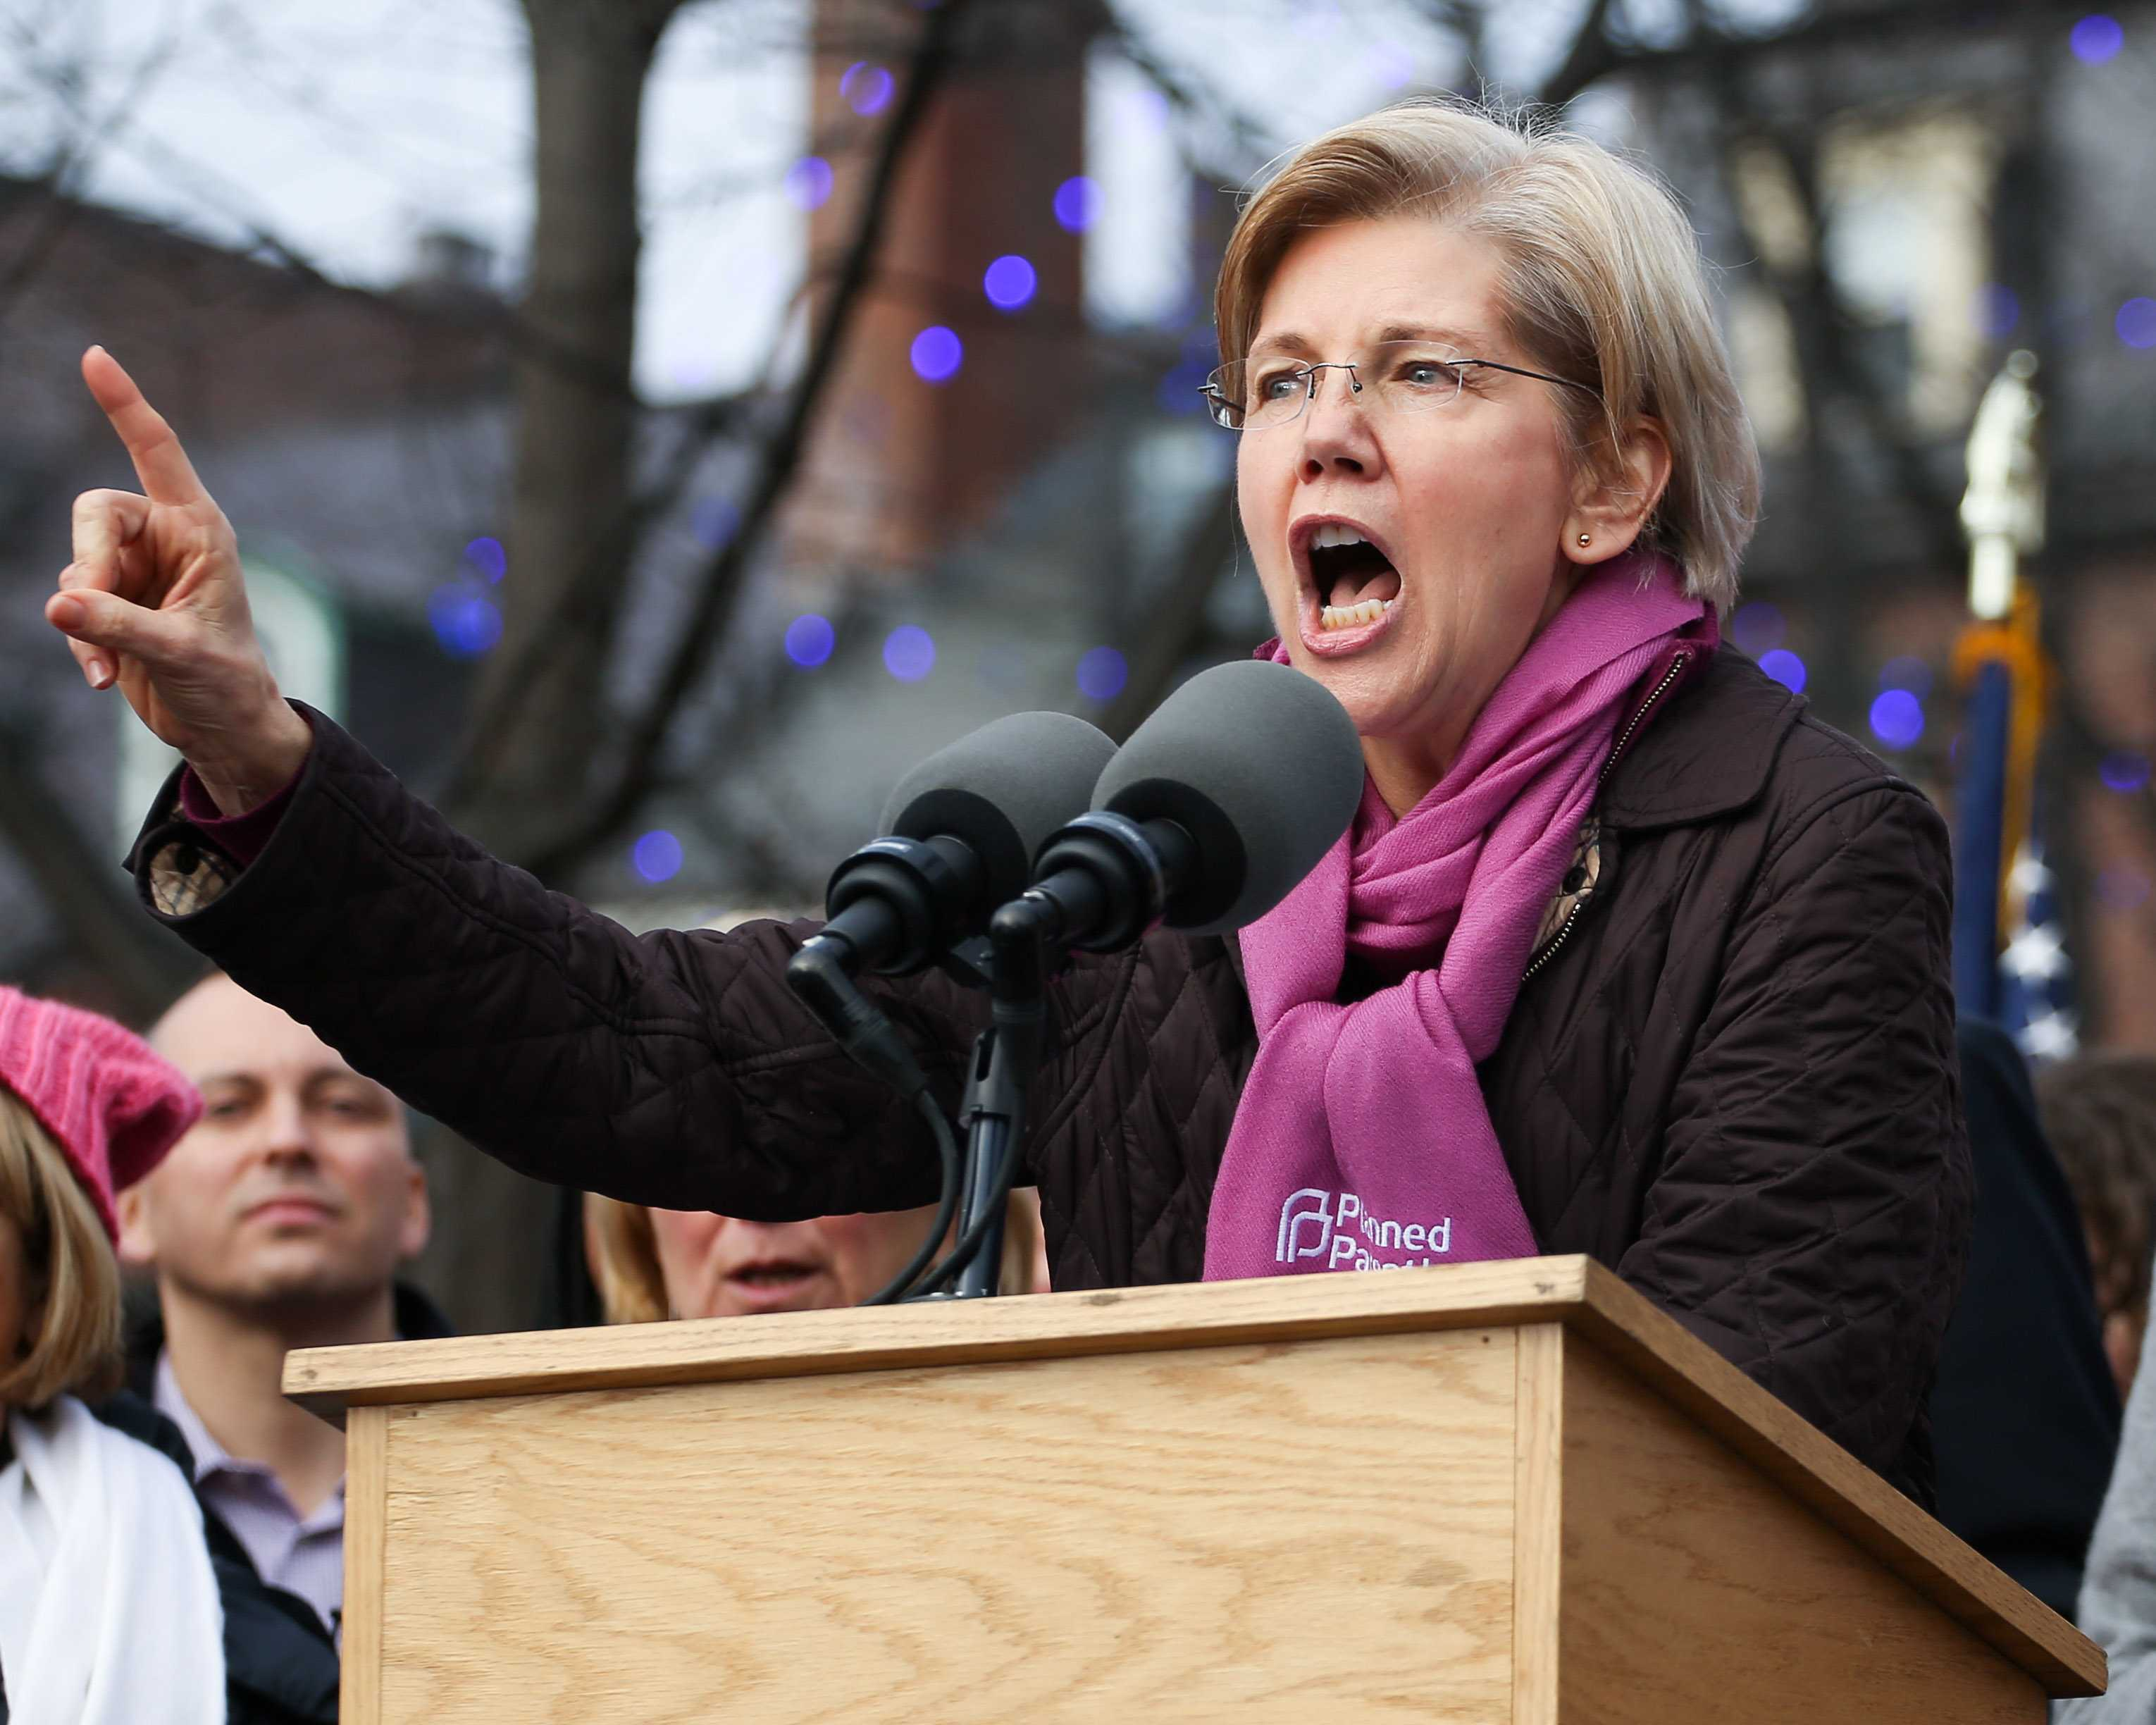 %22We+can+whimper%2C+we+can+whine+or+we+can+fight+back.+Me%3F+I%27m+here+to+fight+back%2C%22+Elizabeth+Warren+said.+%22That%27s+why+we%27re+here+today.+...+We+stand+shoulder-to-shoulder+to+be+clear+that+we+are+here%2C+we+will+not+be+silent%2C+we+will+not+play+dead%2C+we+will+fight+for+what+we+believe+in.%22+